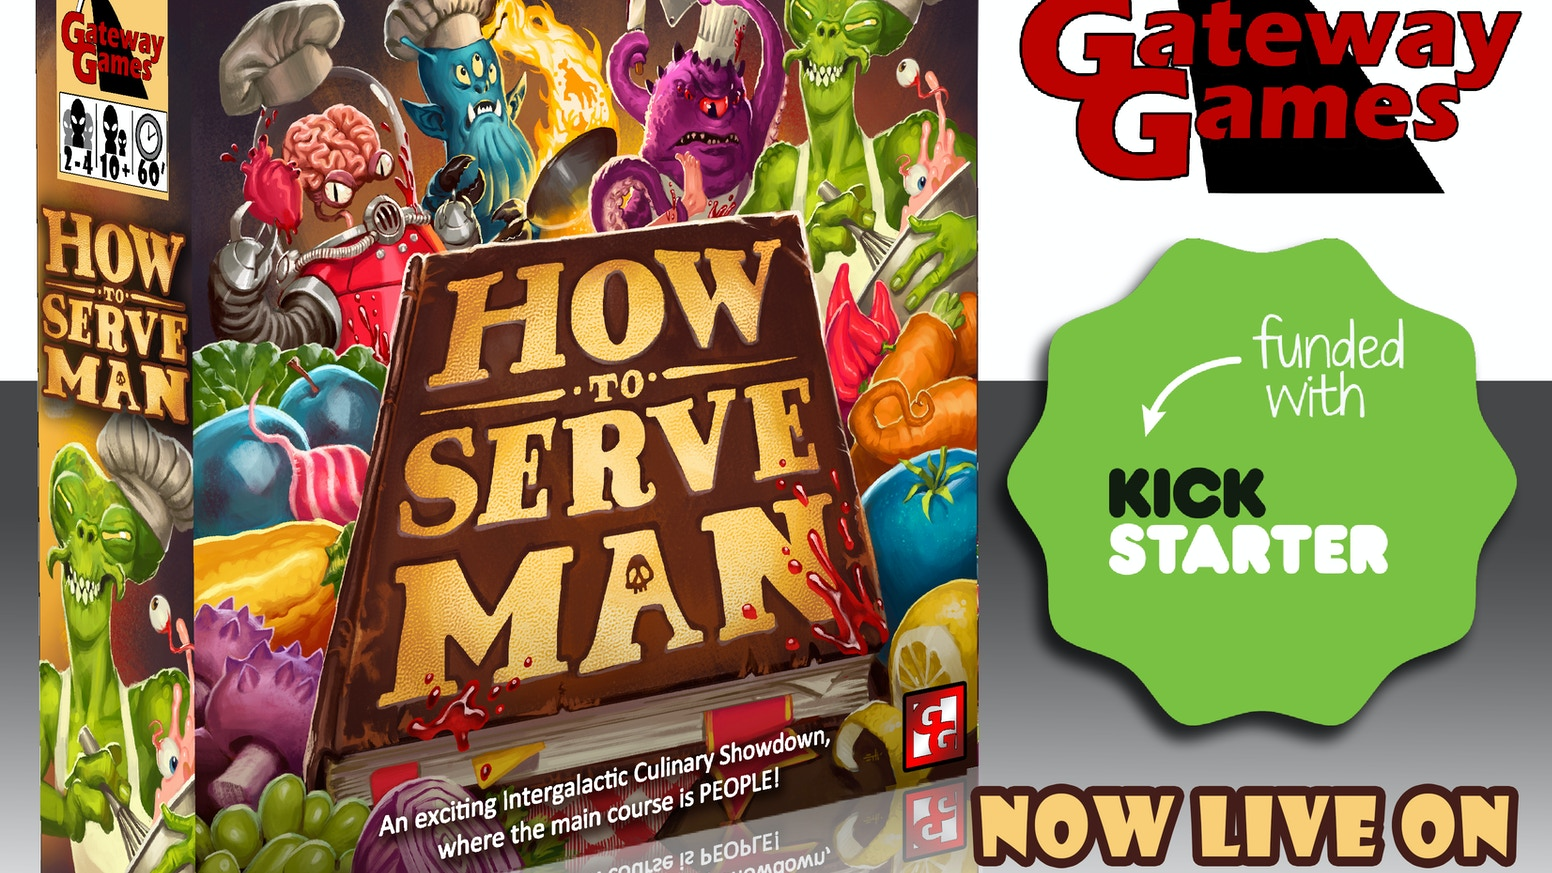 A fast moving board game, where players compete in an alien cooking competition, and the main ingredient is PEOPLE!